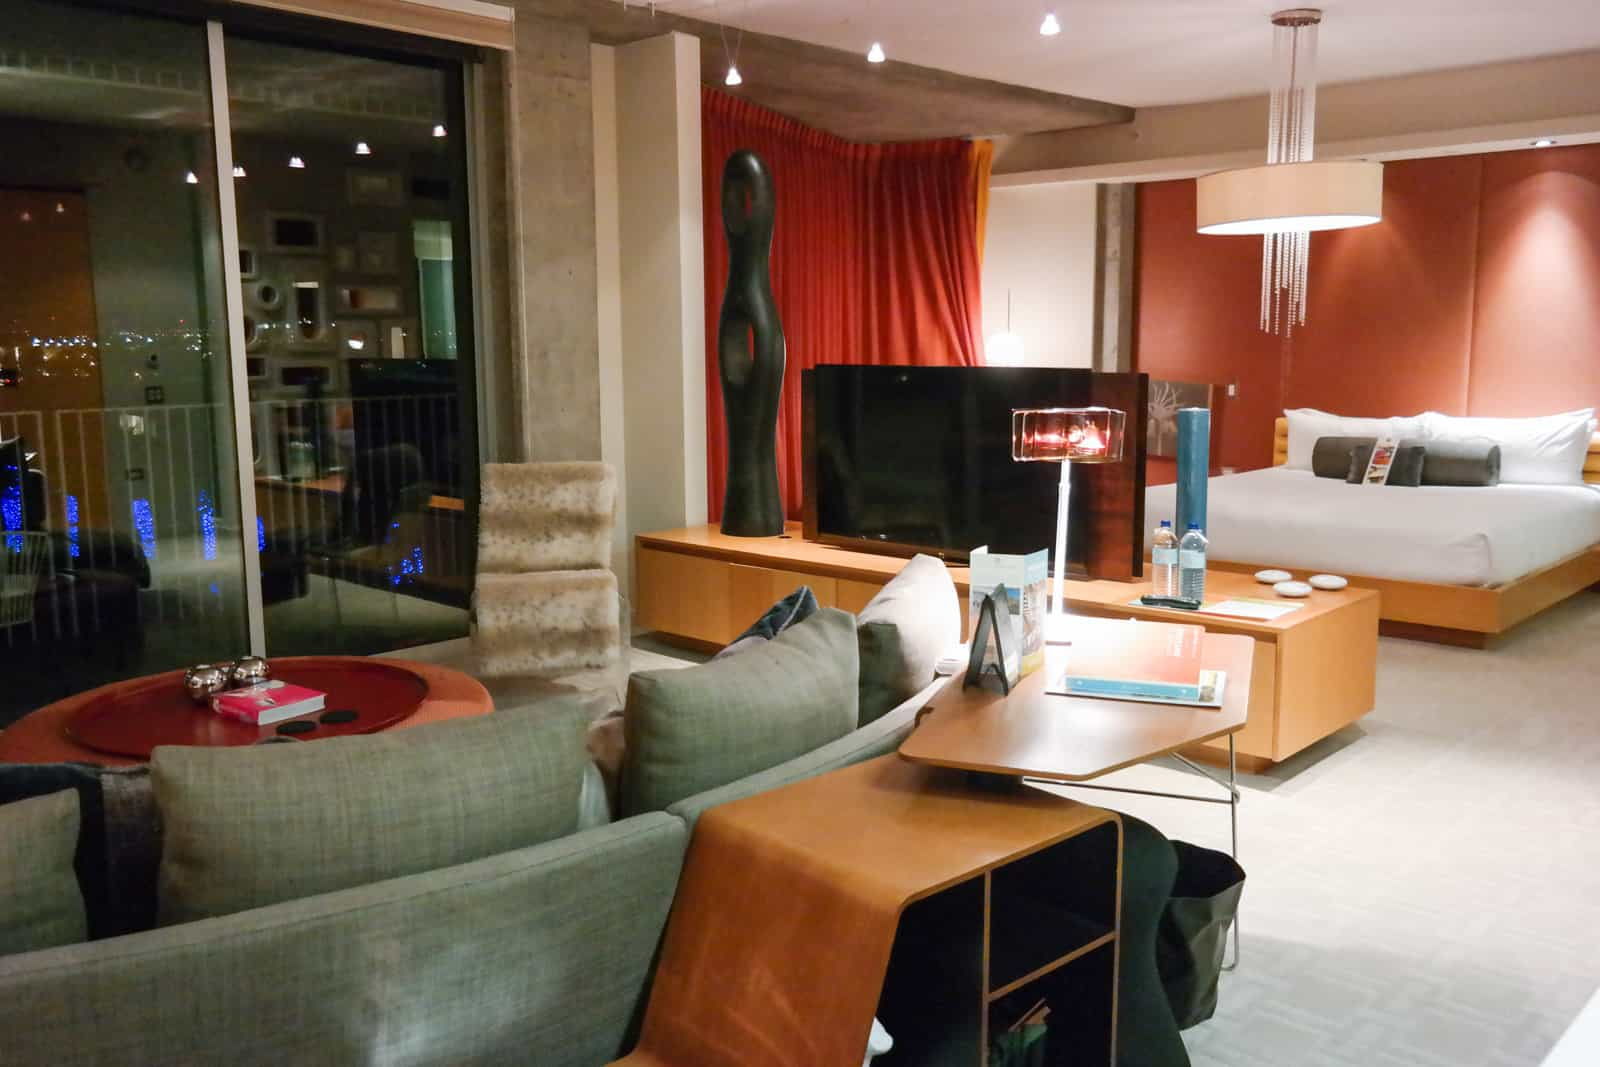 Hotel Valley Ho Rooms - where to stay in Scottsdale